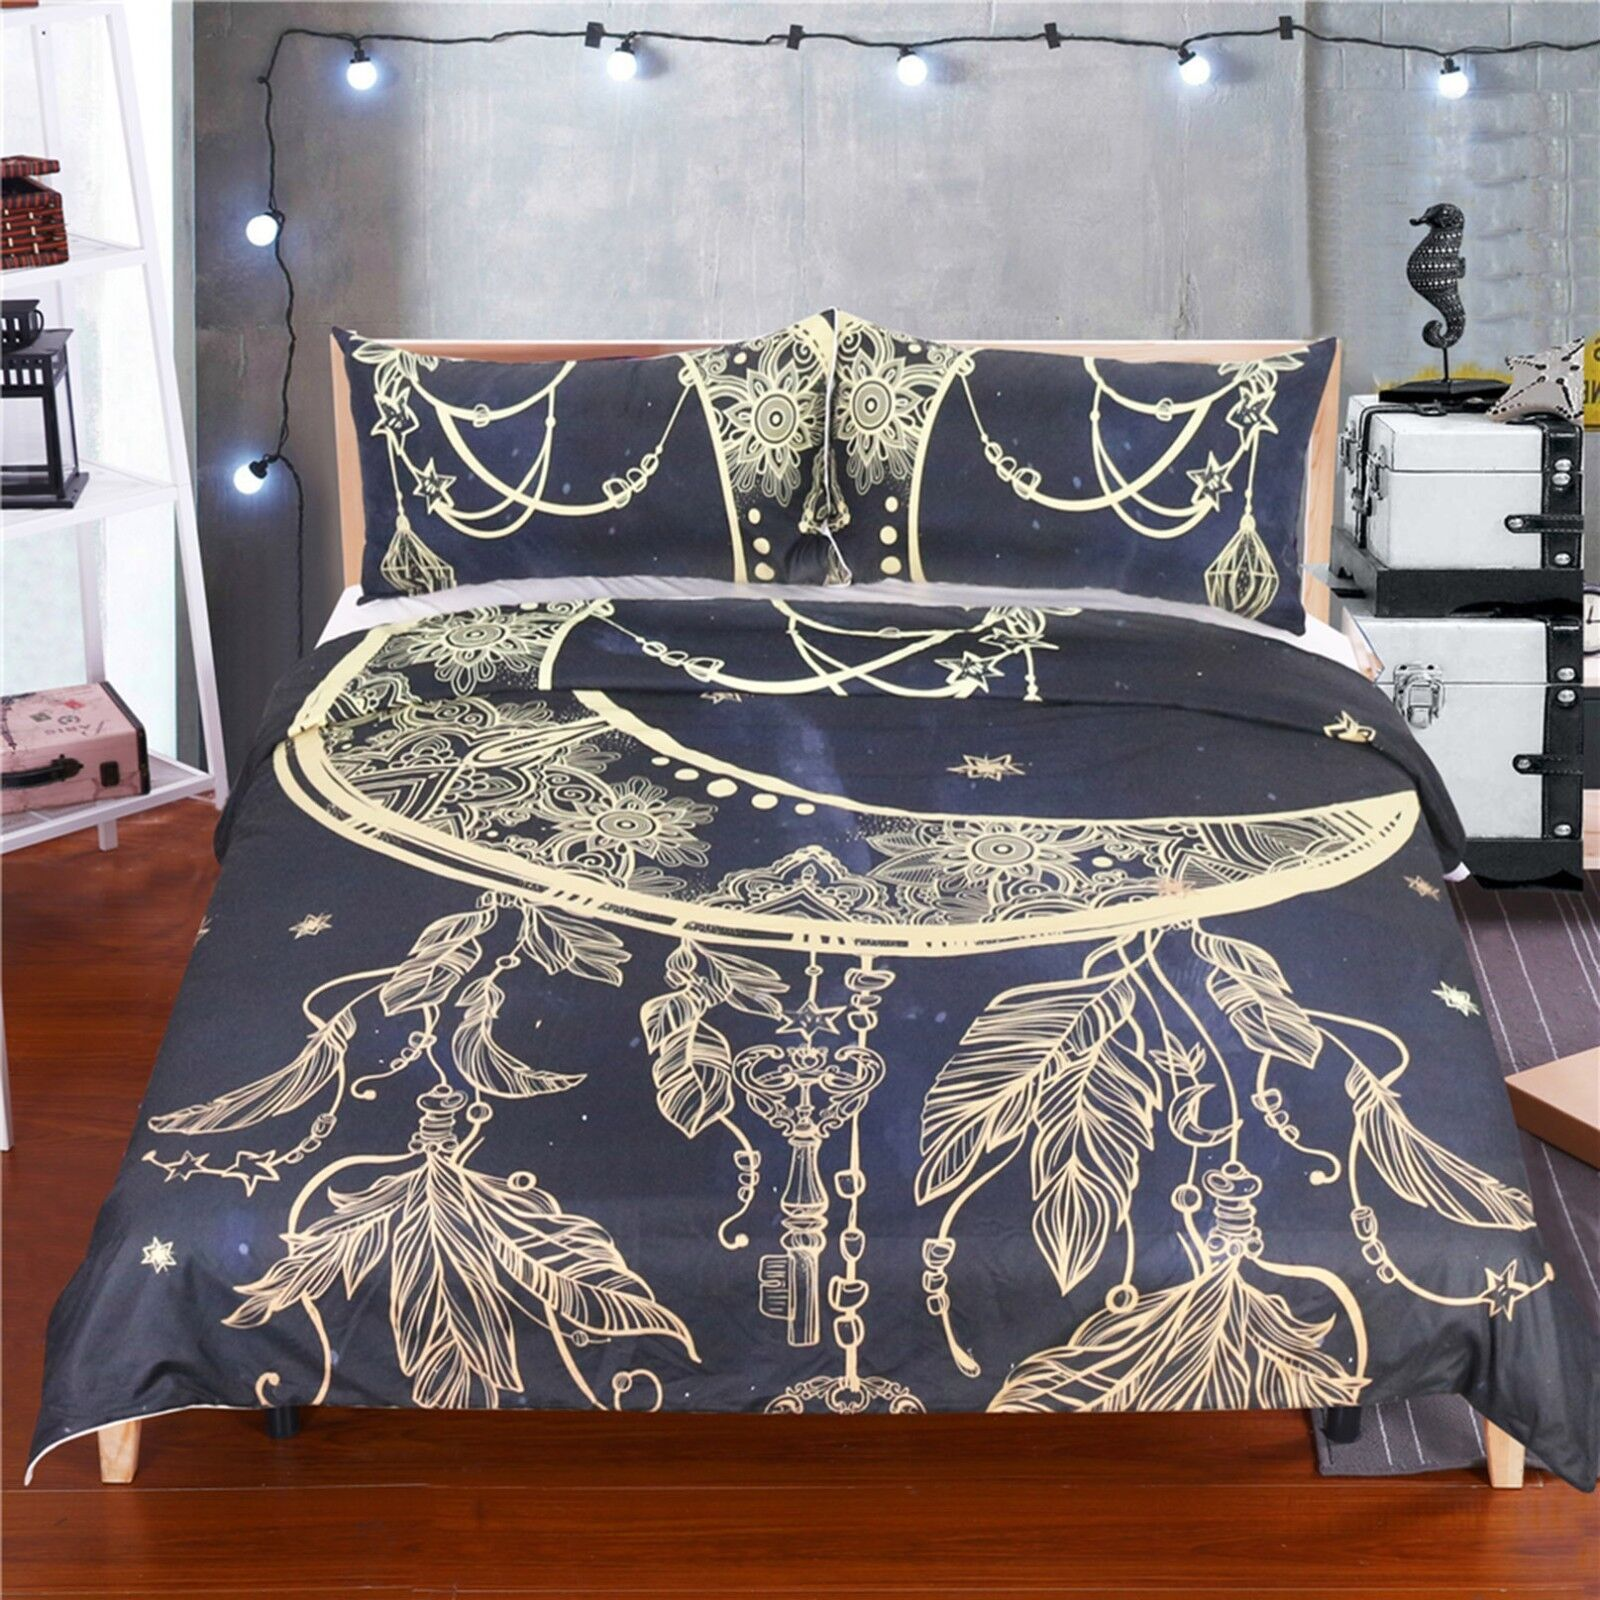 3D Moon Feathers 462 Bed Pillowcases Quilt Duvet Cover Set Single Queen CA